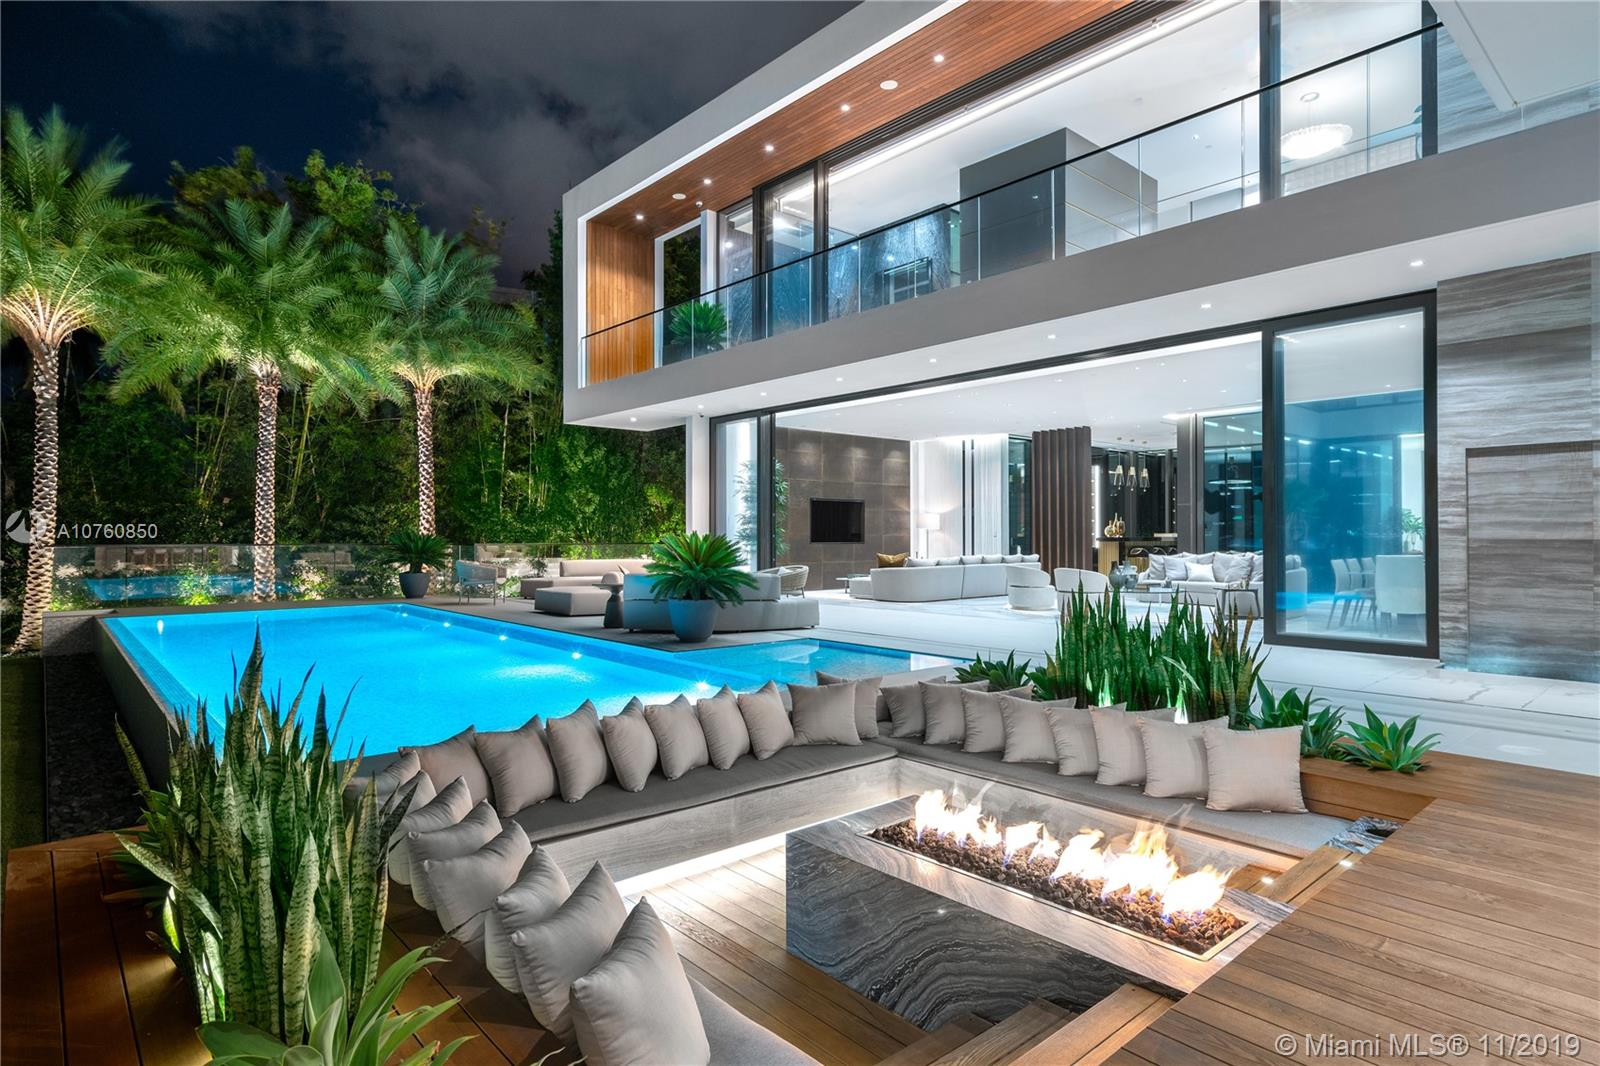 19 Palm Ave Luxury Real Estate